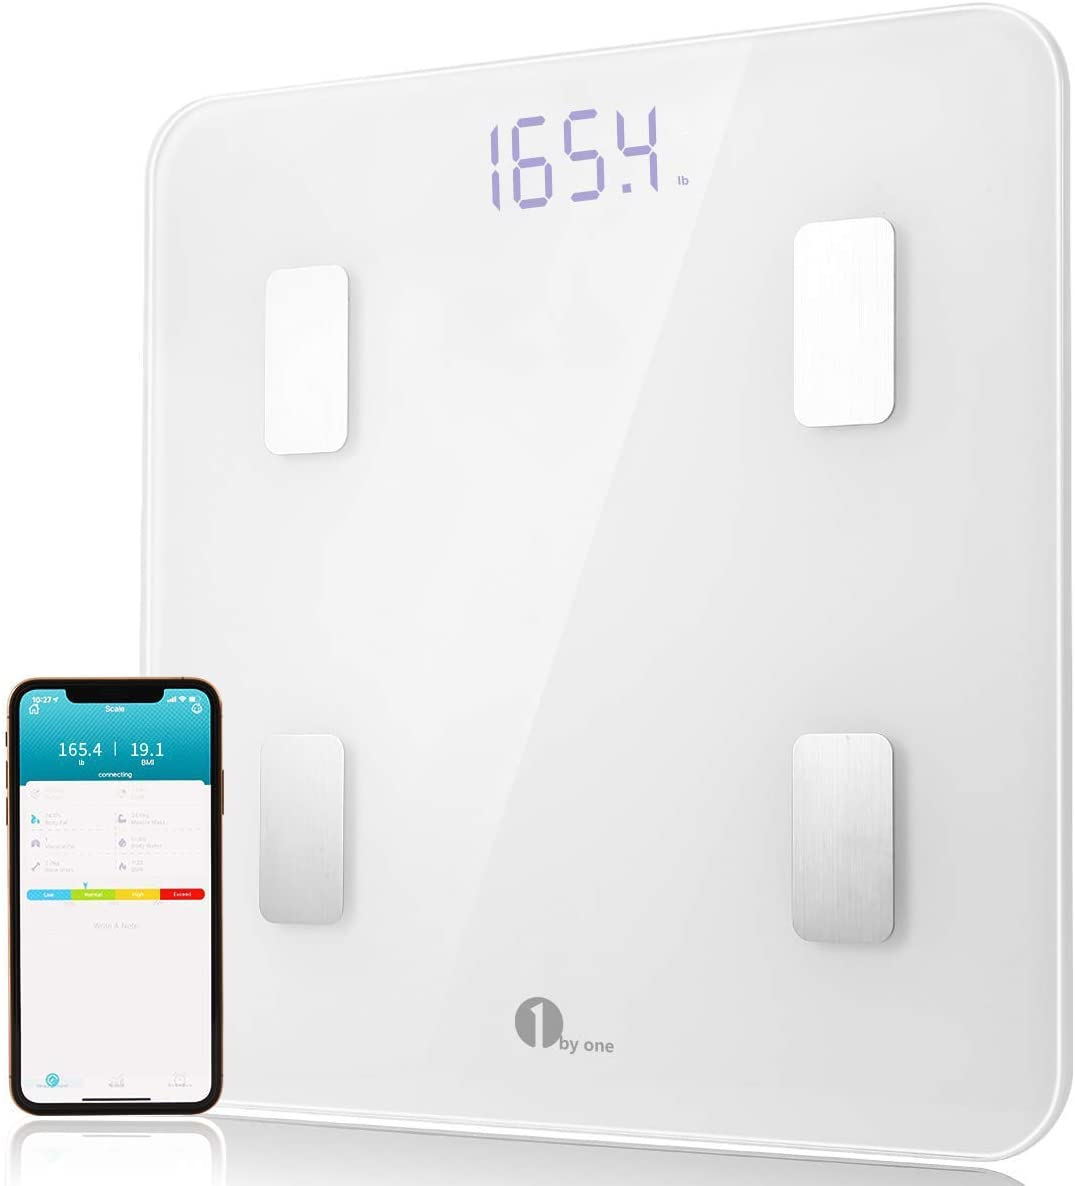 1byone Smart Body Fat Scale Body Composition Analyzer, Bathroom Digital Weight Scale with Smartphone App, Sync Data with Apple Health, Google Fit Fitbit APP – White